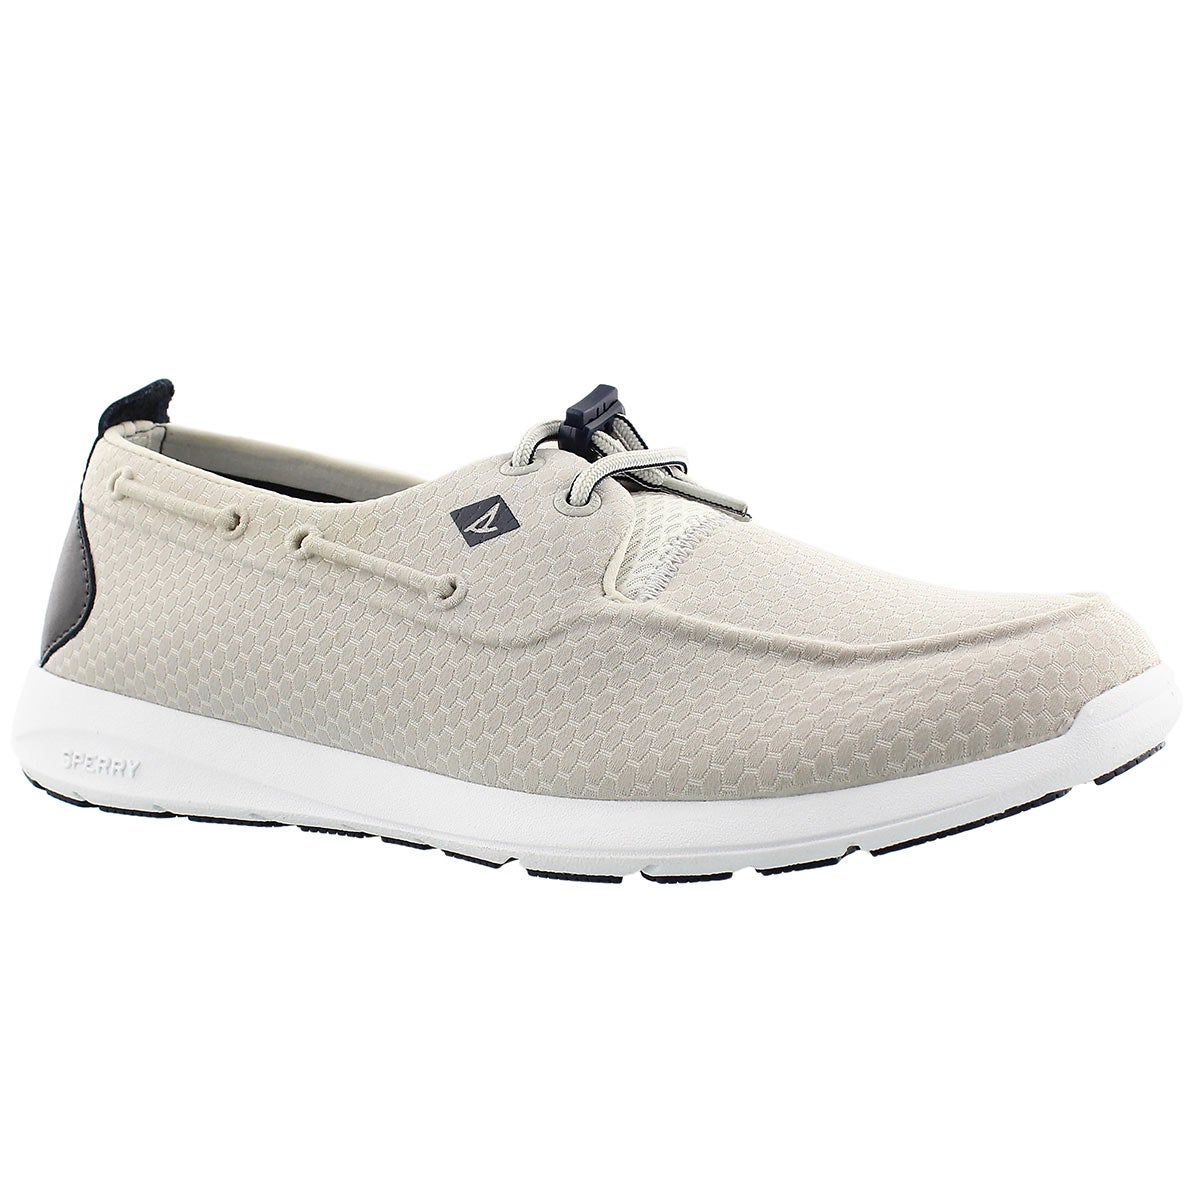 Men's SOJOURN silver molded mesh sneakers